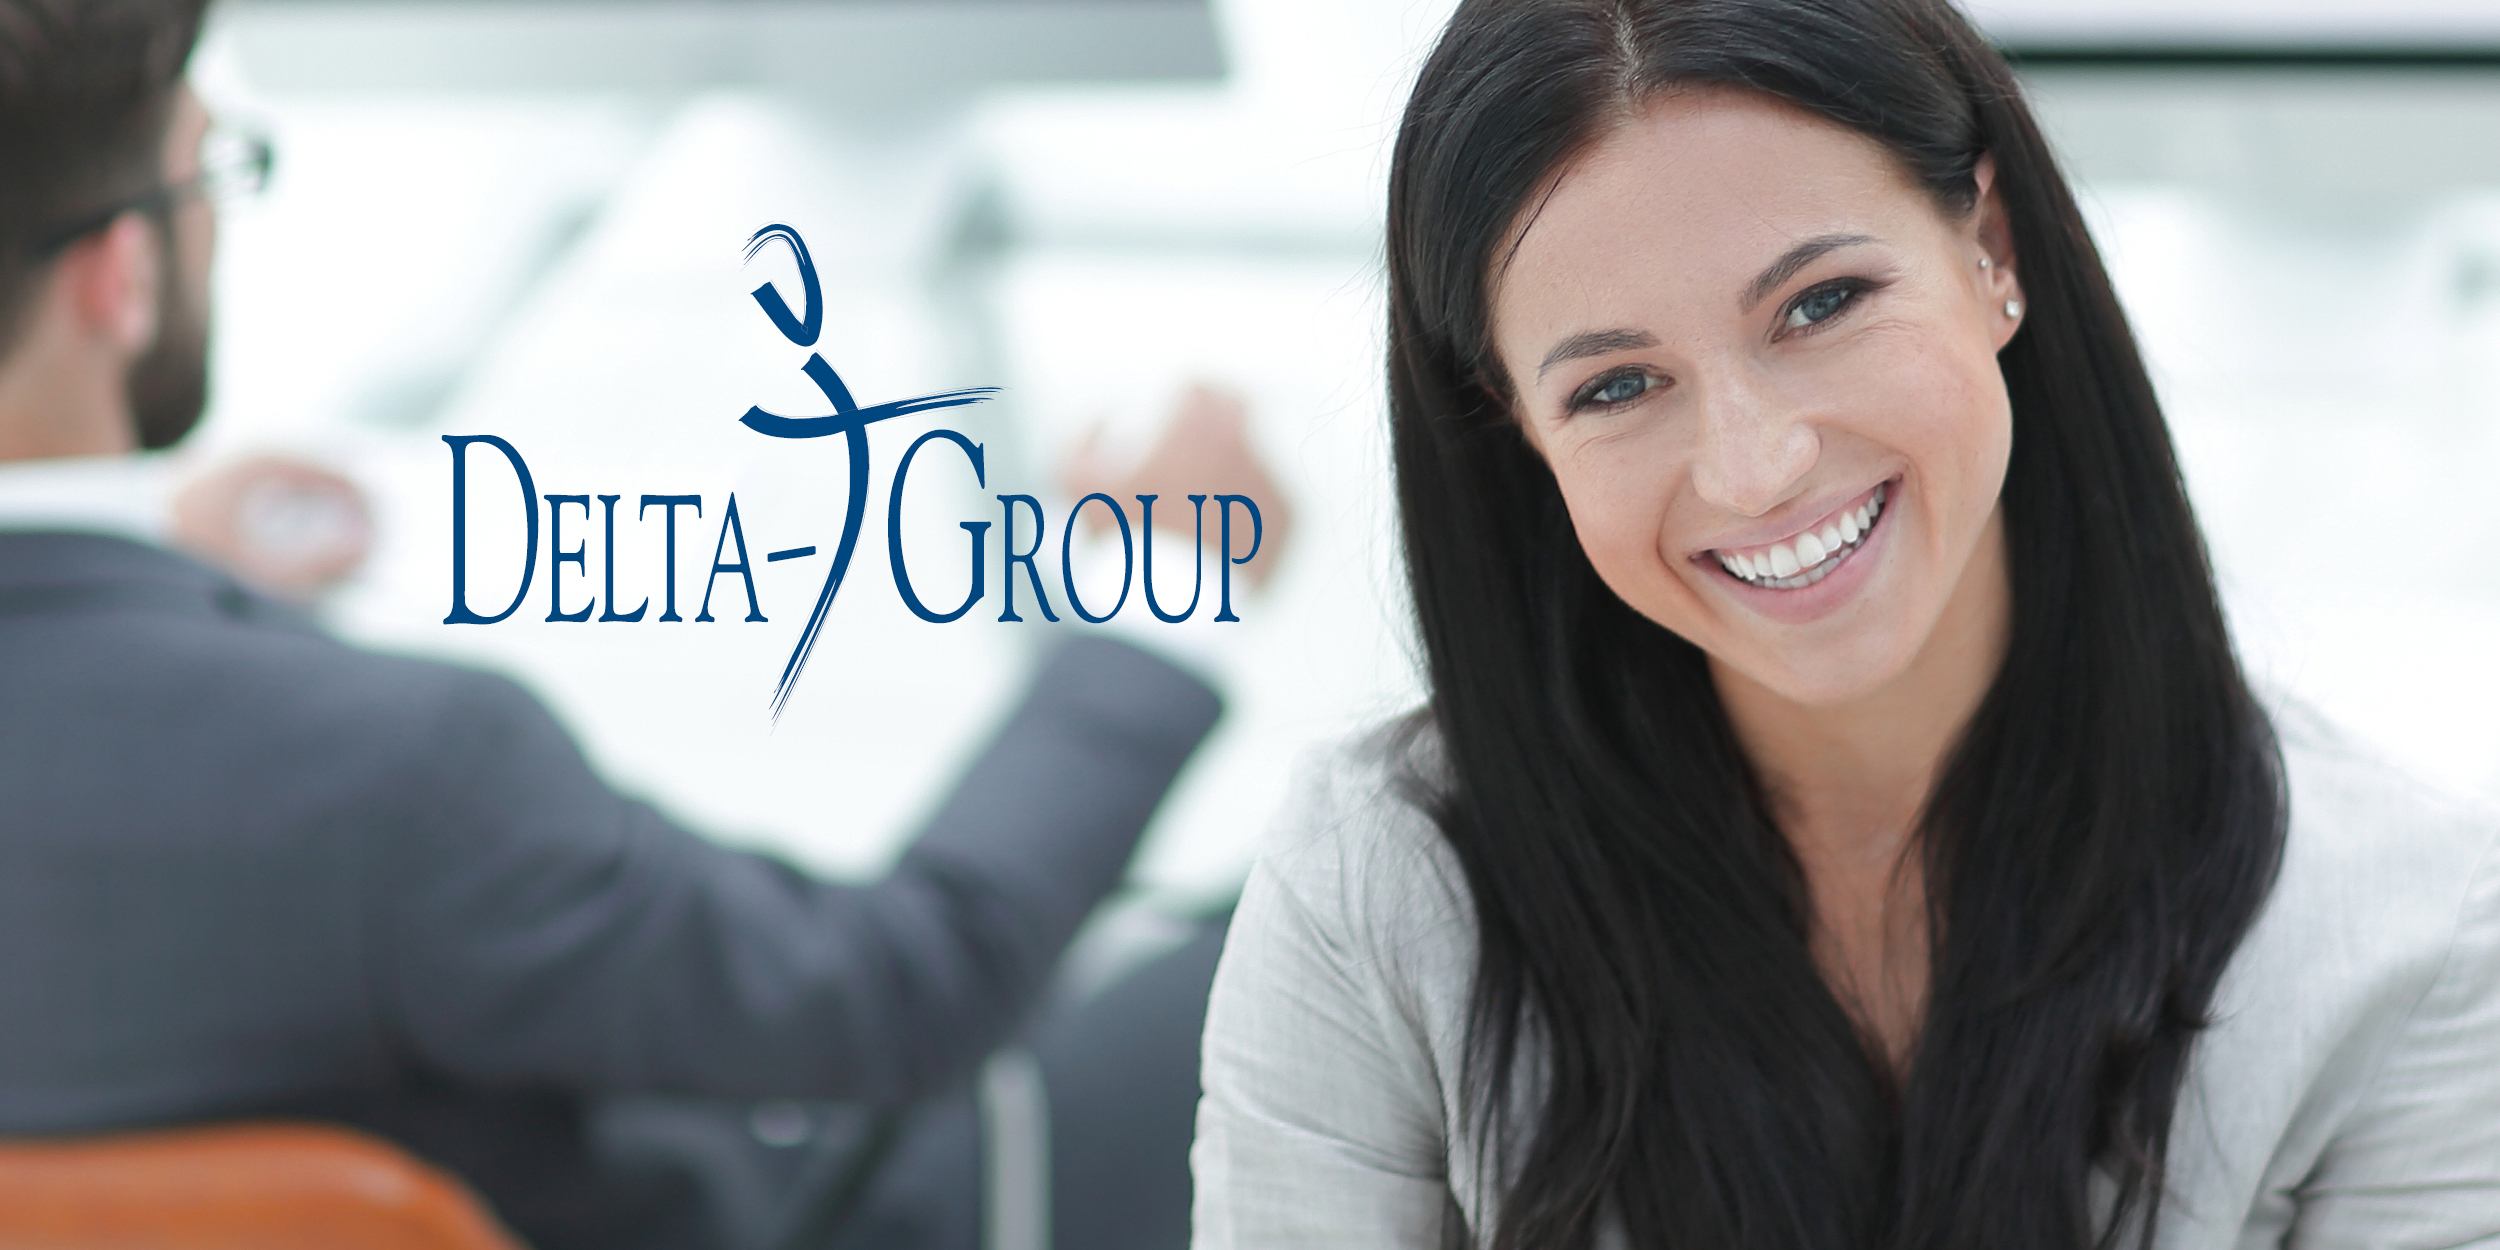 Delta-T Group - Therapeutic Aide banner image